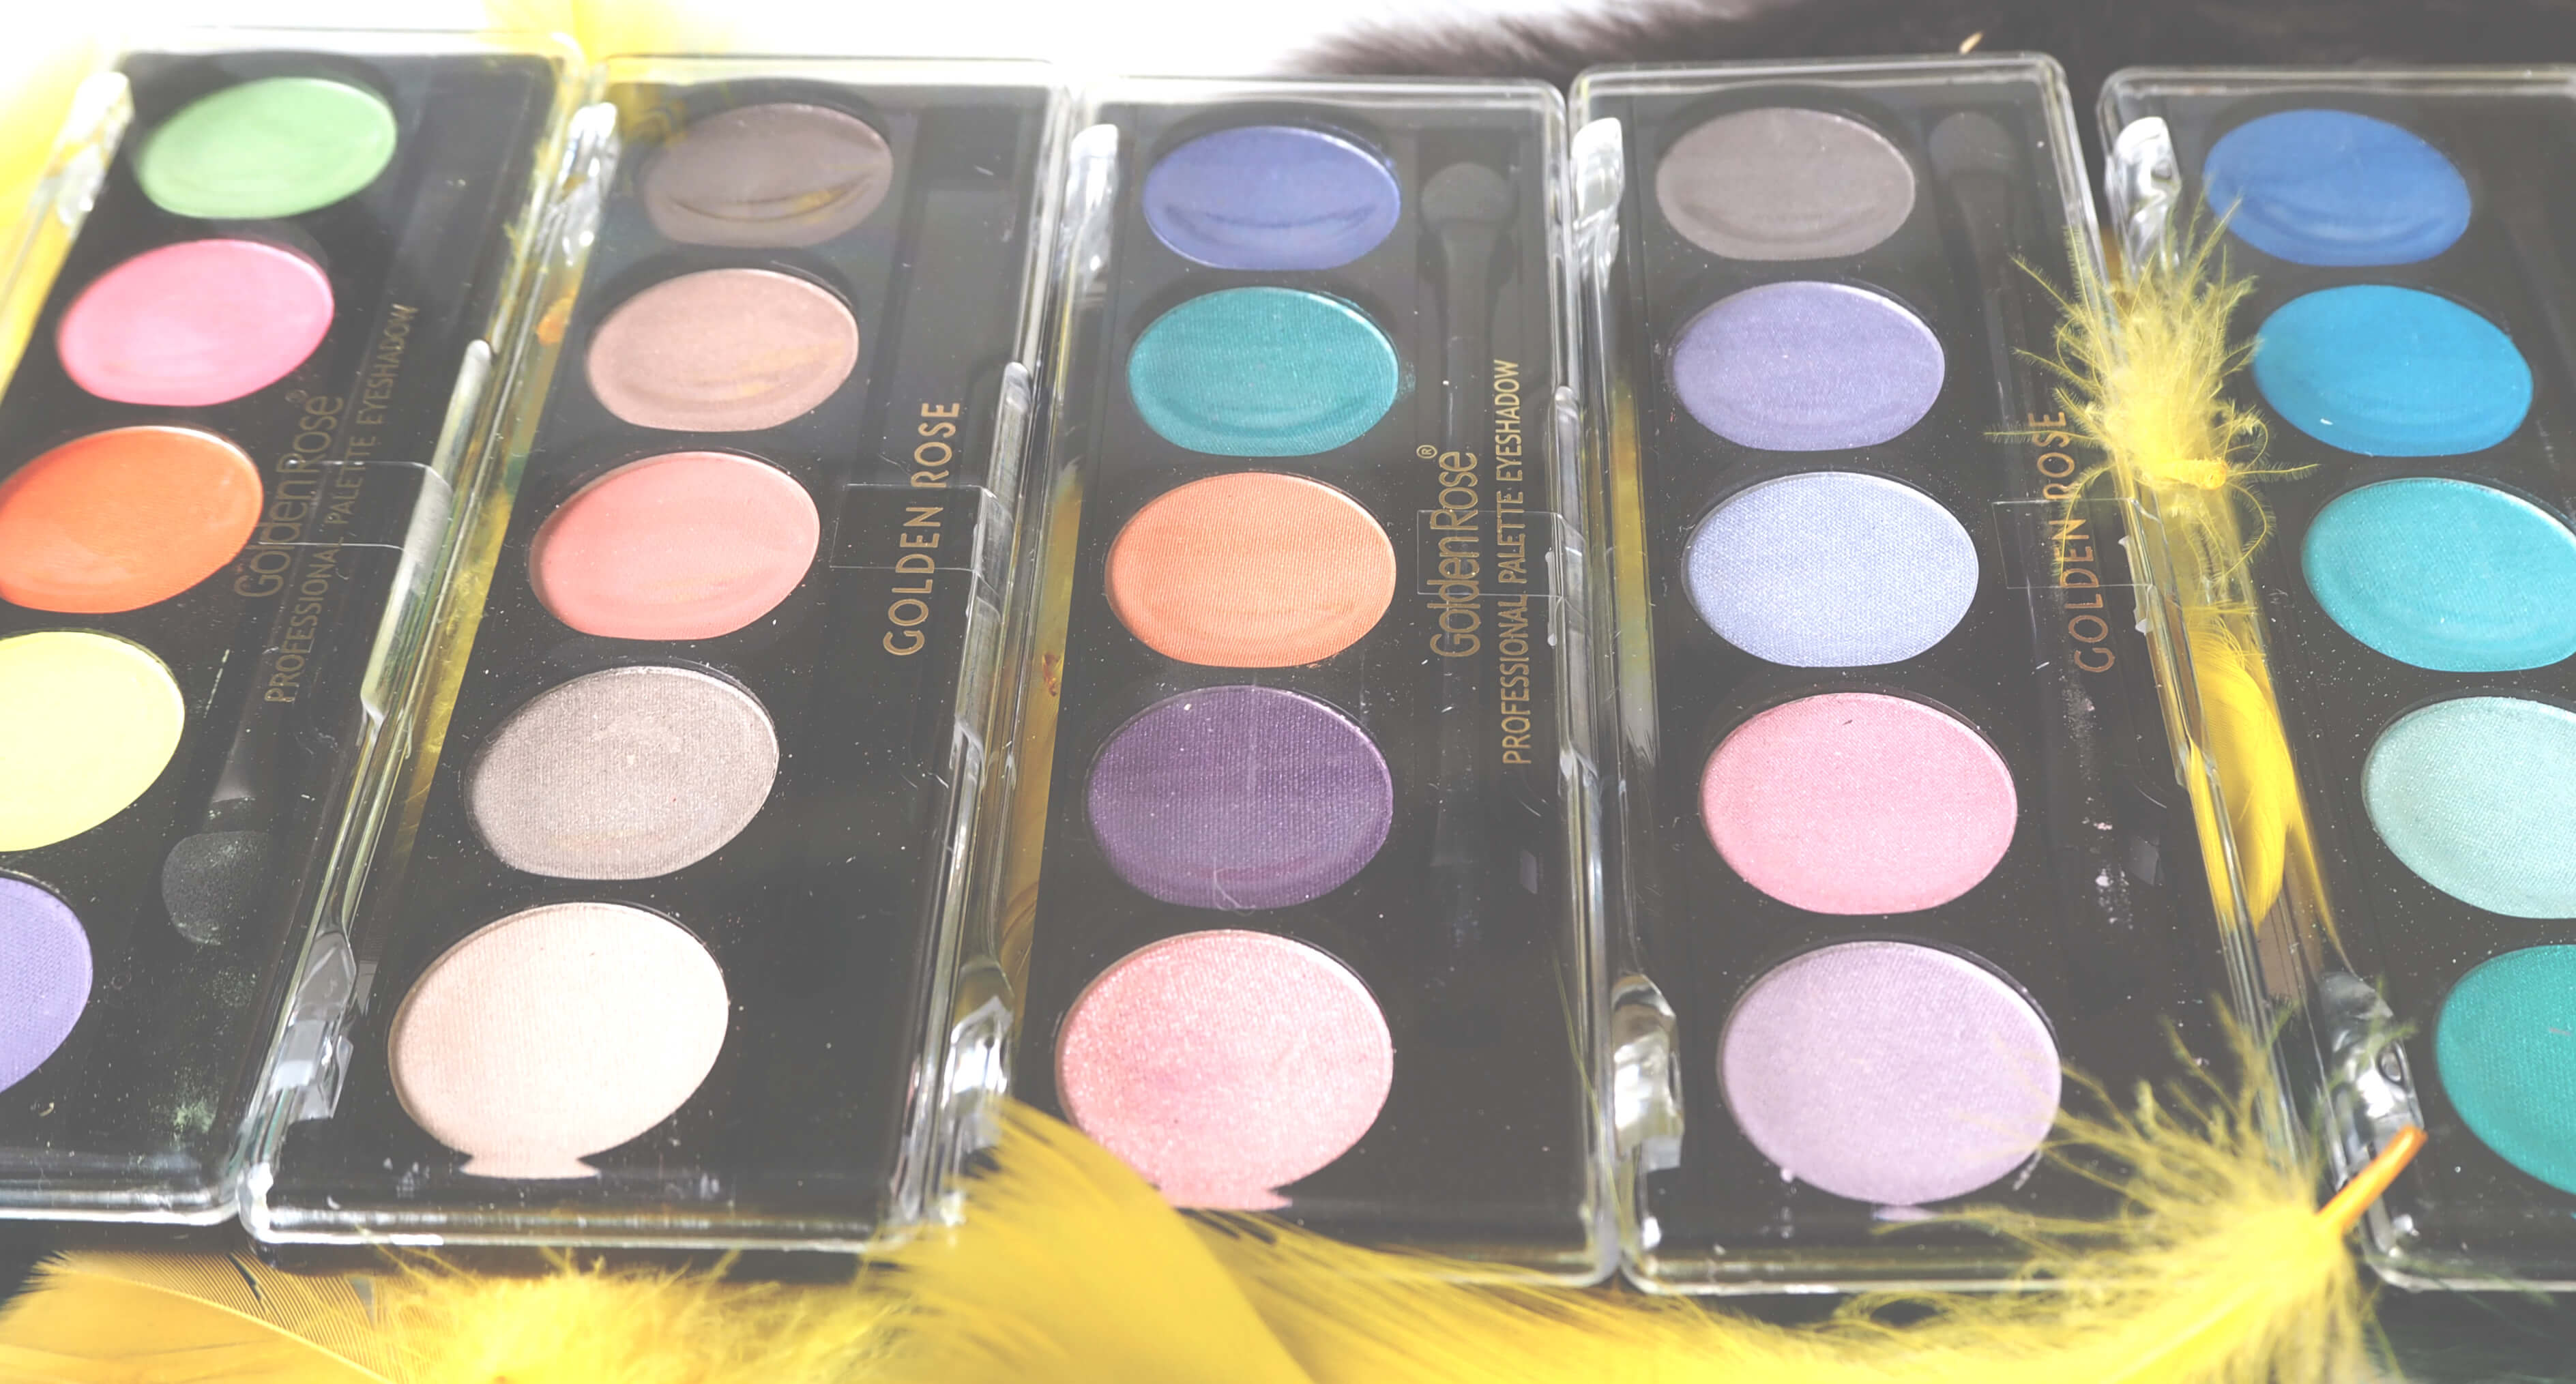 Opinia GOLDEN ROSE PROFESSIONAL PALETTE EYESHADOW